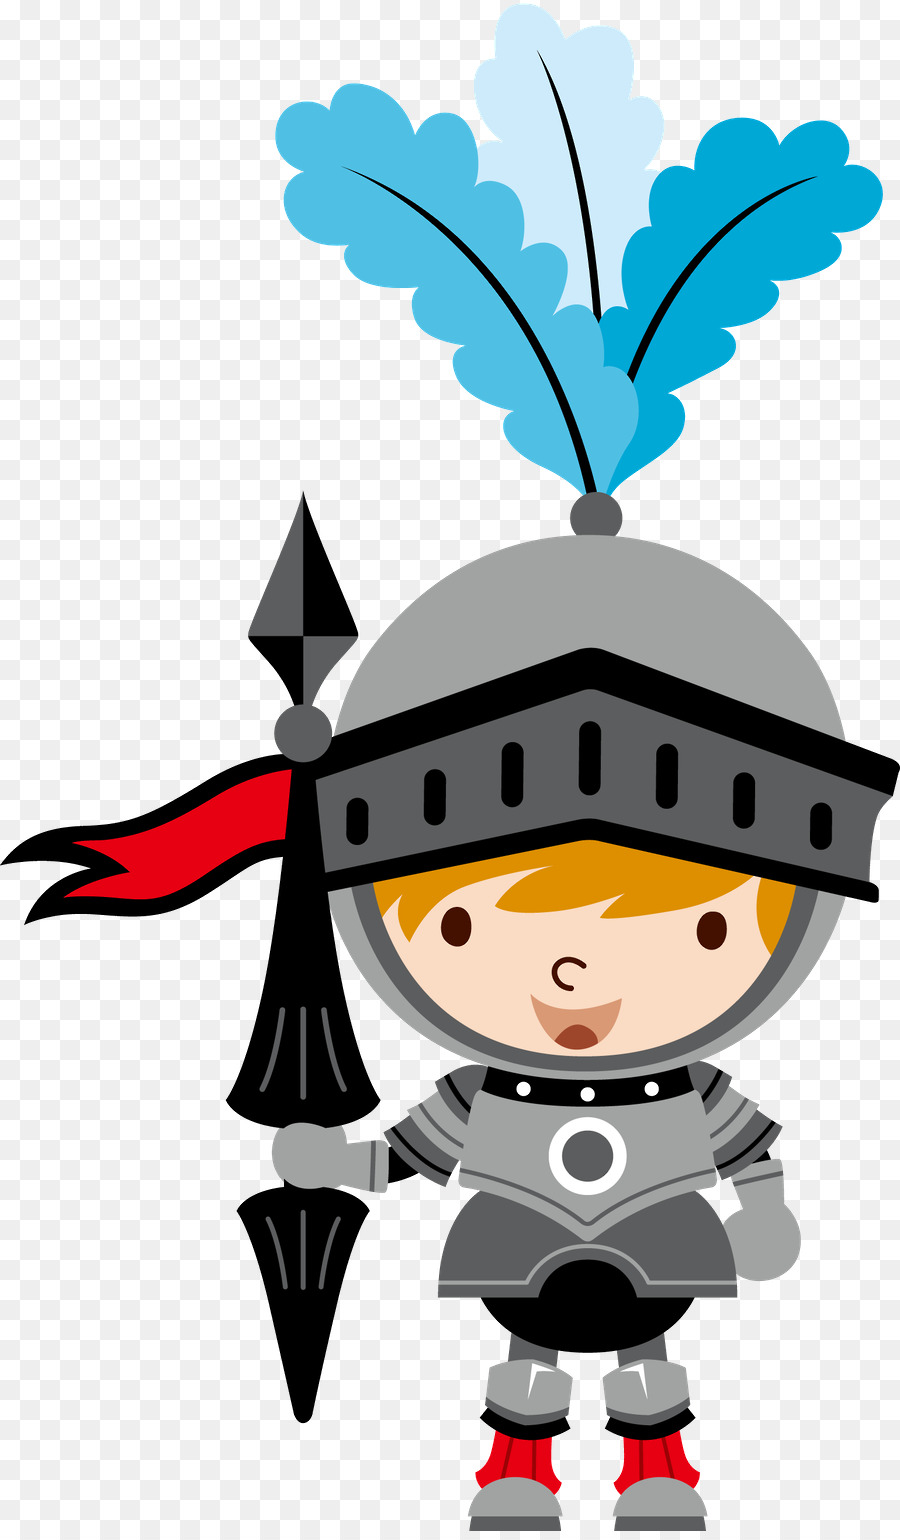 knight clip art free clipart vector labs u2022 rh askvector today knight clipart black and white knight clipart black and white